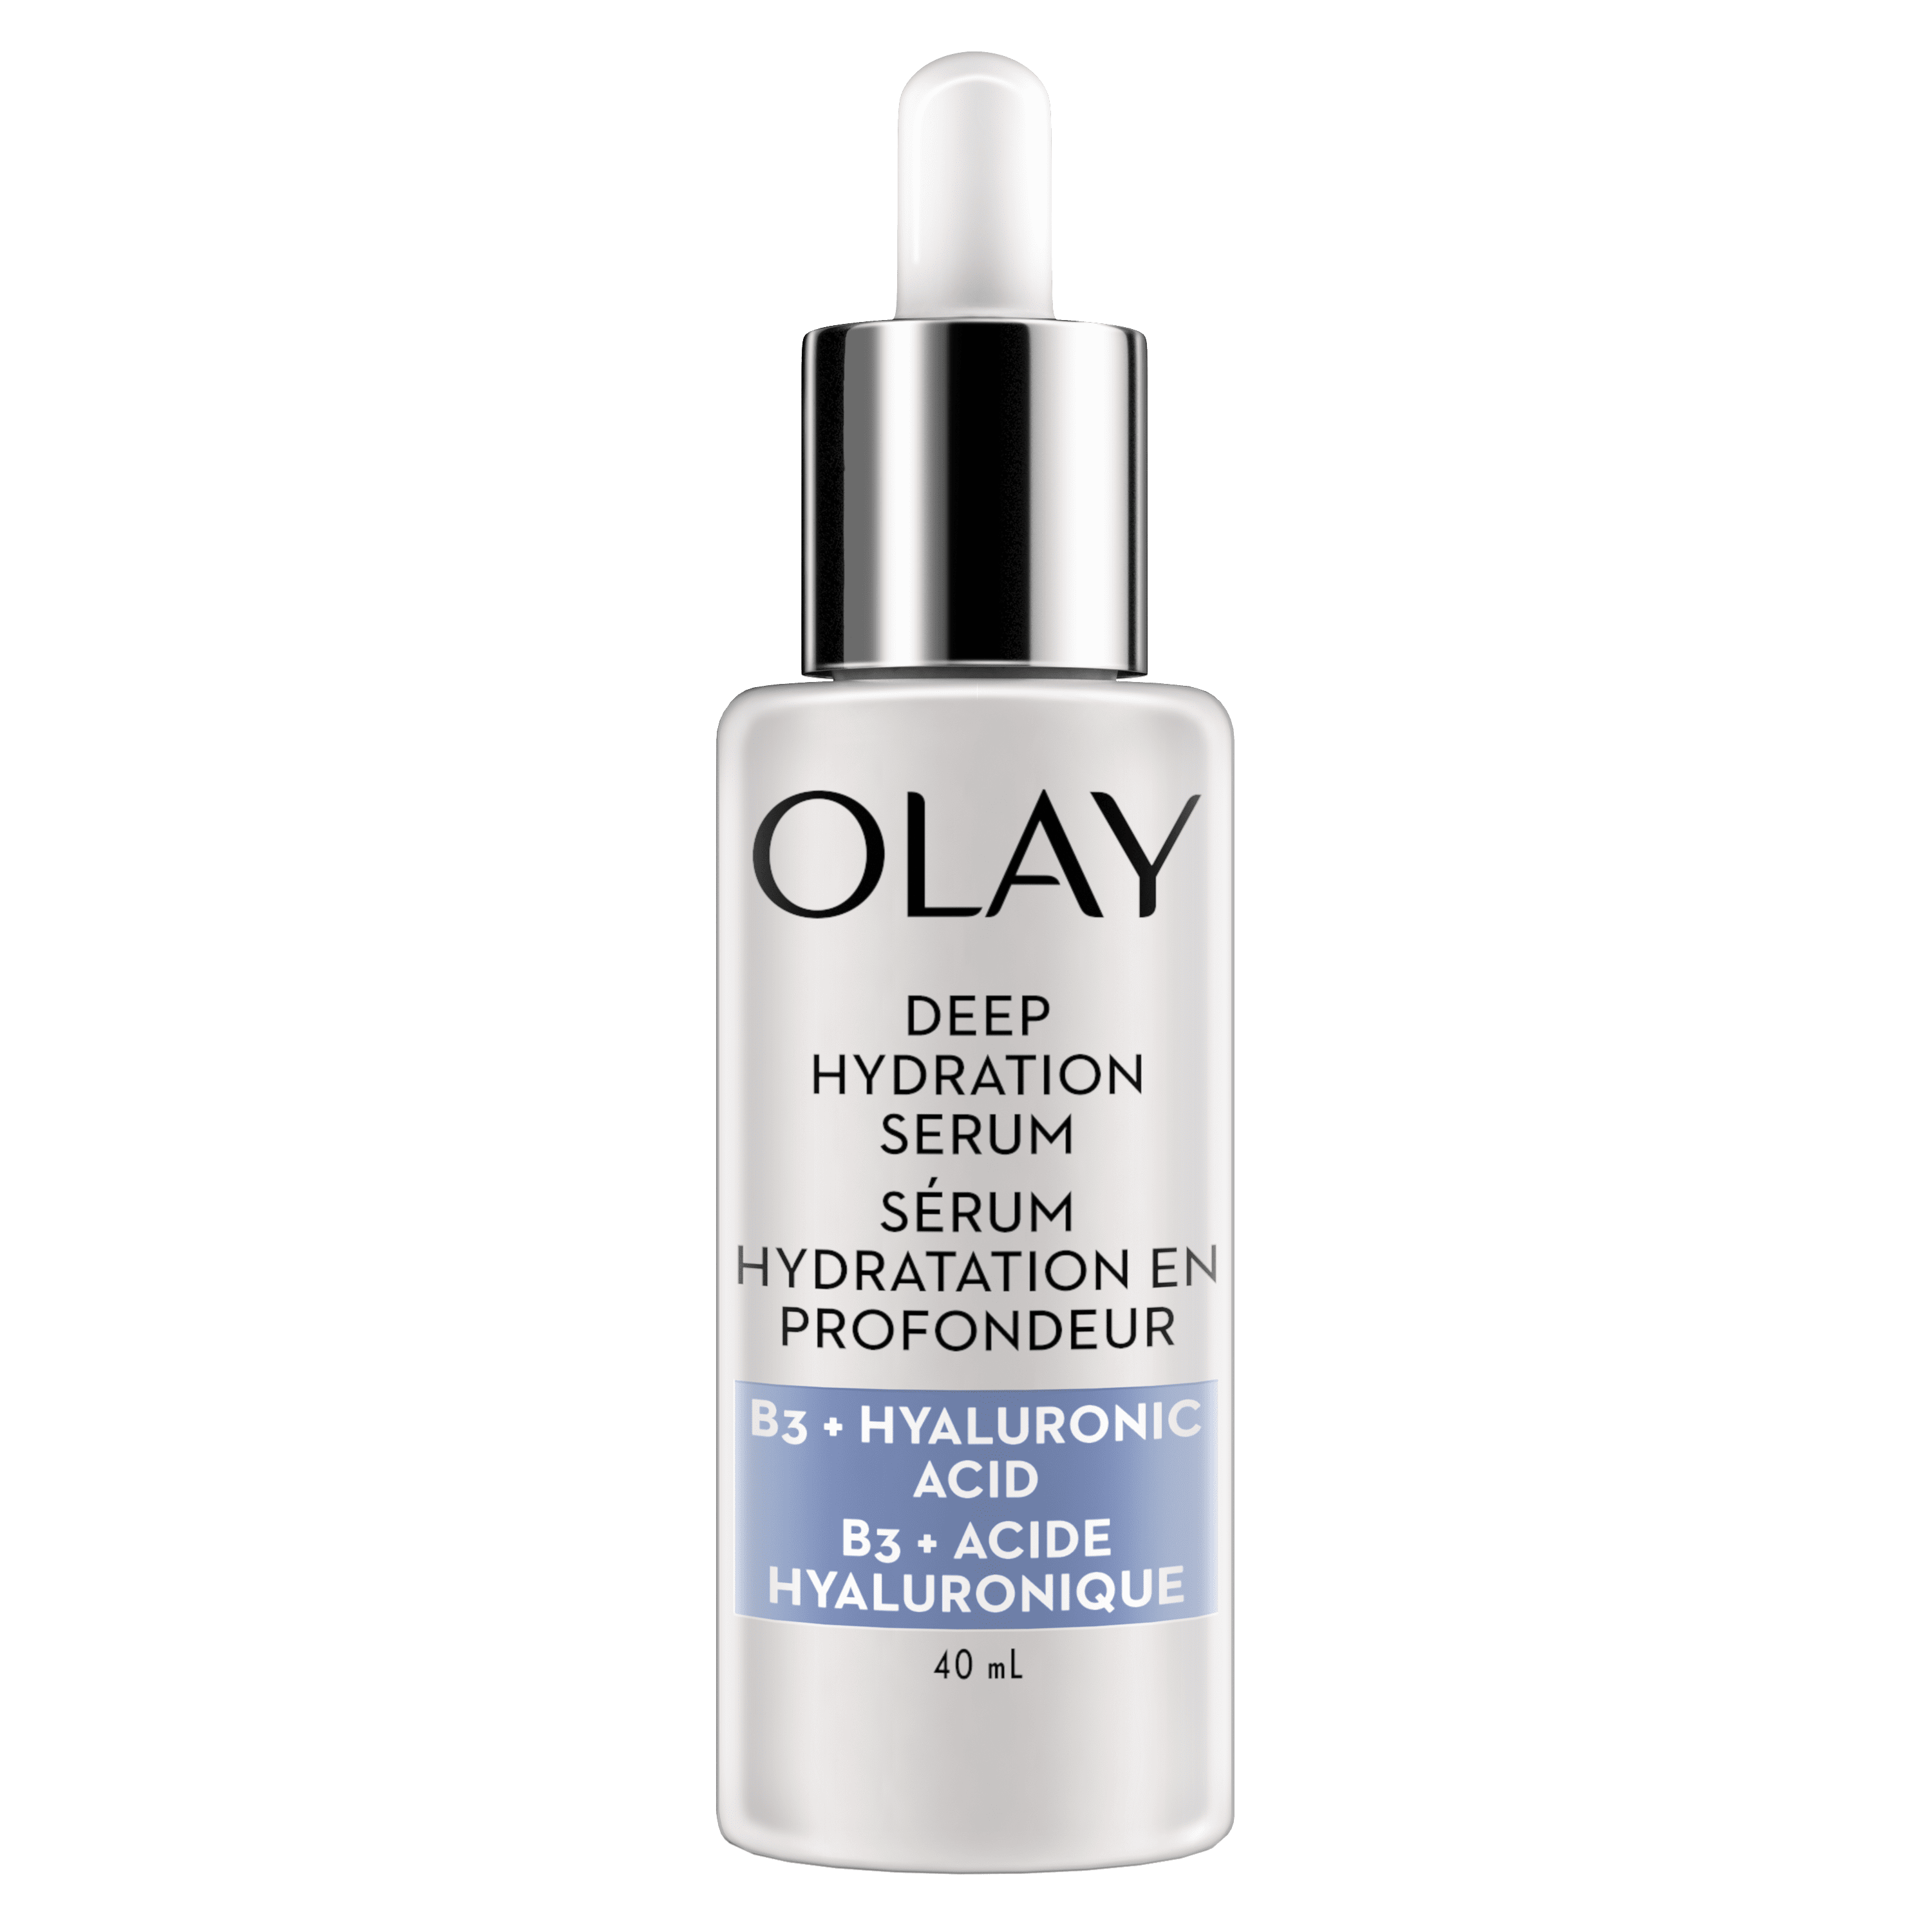 Olay Deep Hydration Serum with Vitamin B3plus Hyaluronic Acid 40 mL